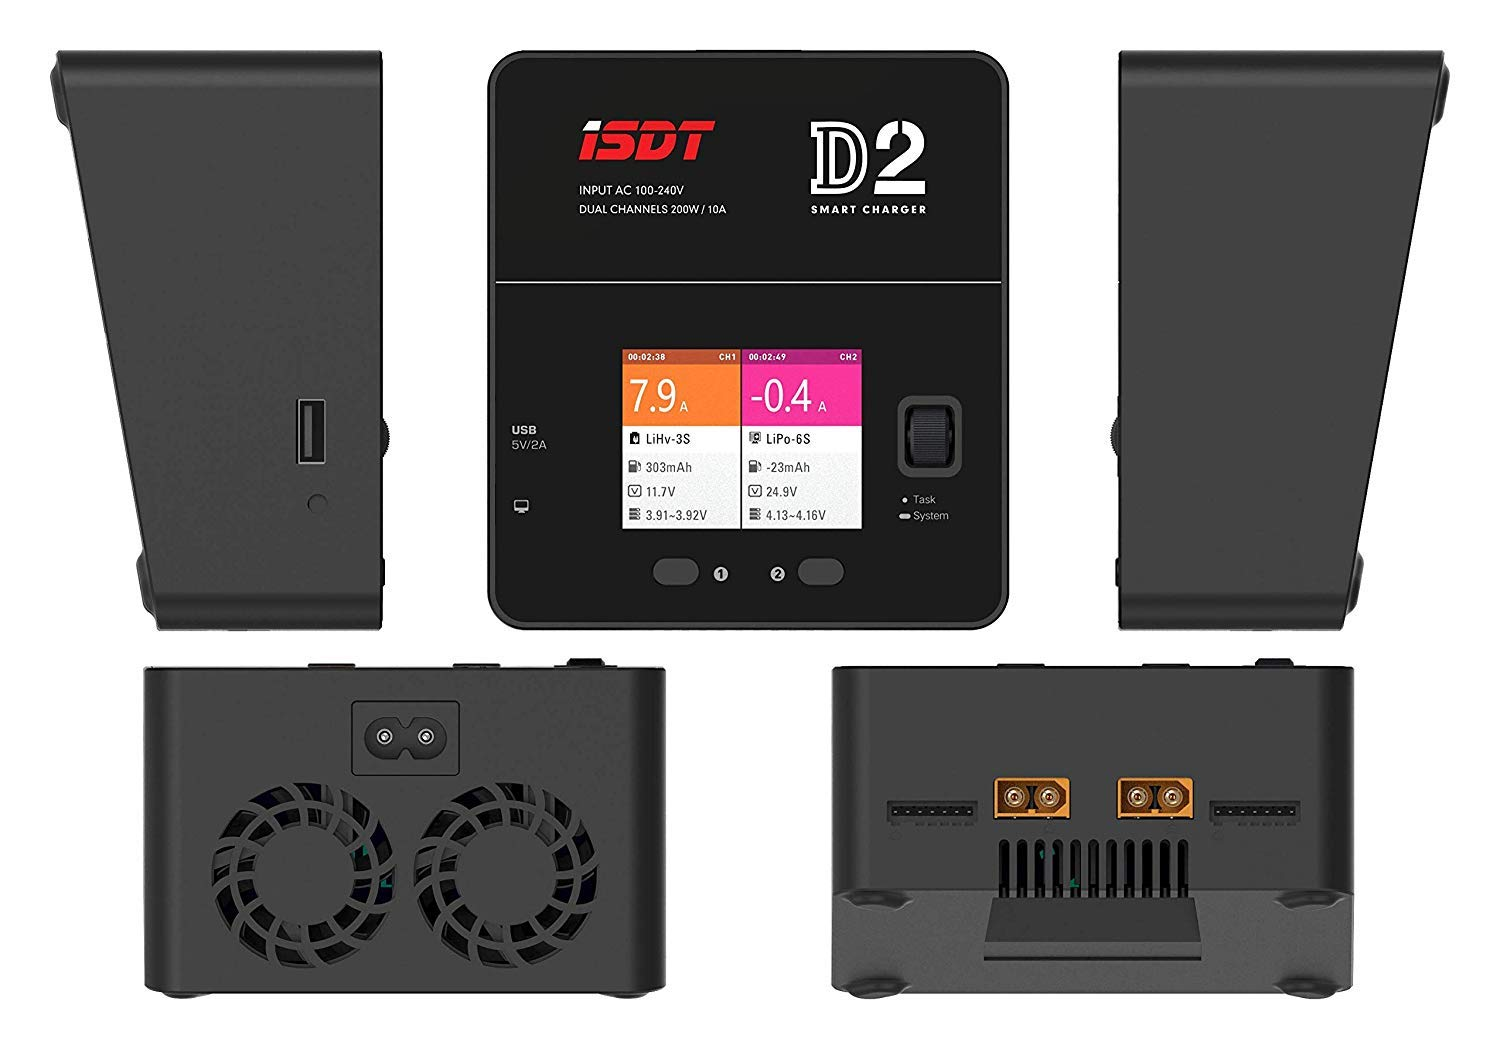 ISDT D2 LiPo Battery Balance Charger Duo Discharger Dual 200W 12A2 AC Dual Channel Output 1-6S Li-ion Life NiCd NiMH LiHV PB Smart Batterry by ISDT (Image #2)